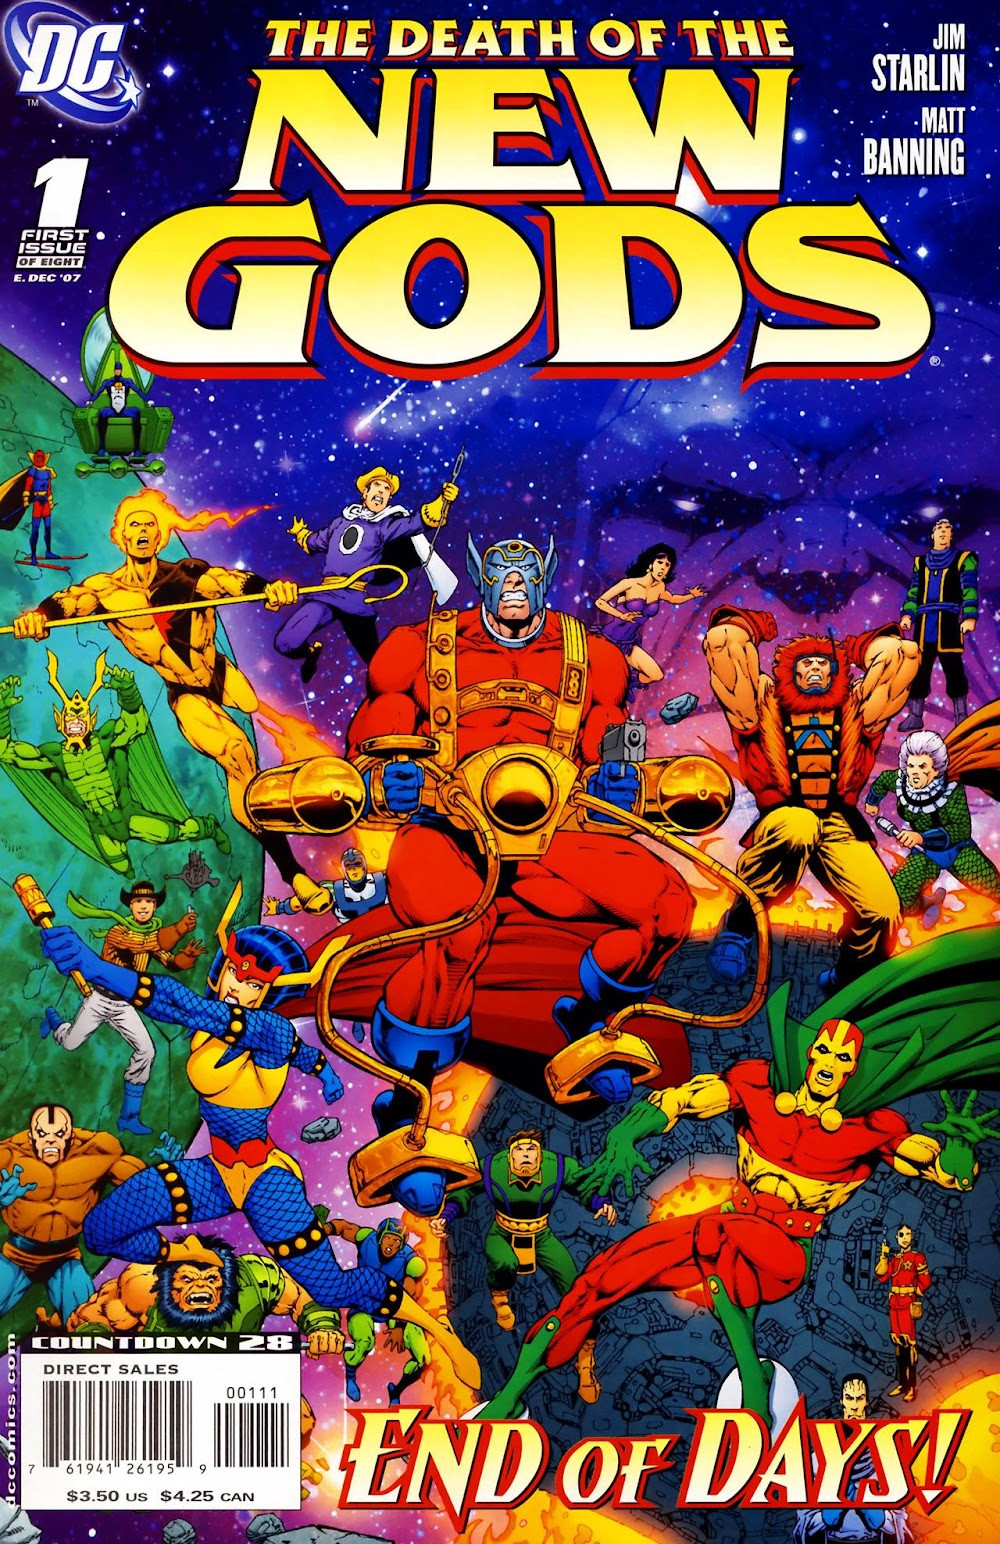 The Death of the New Gods (2007) - complete